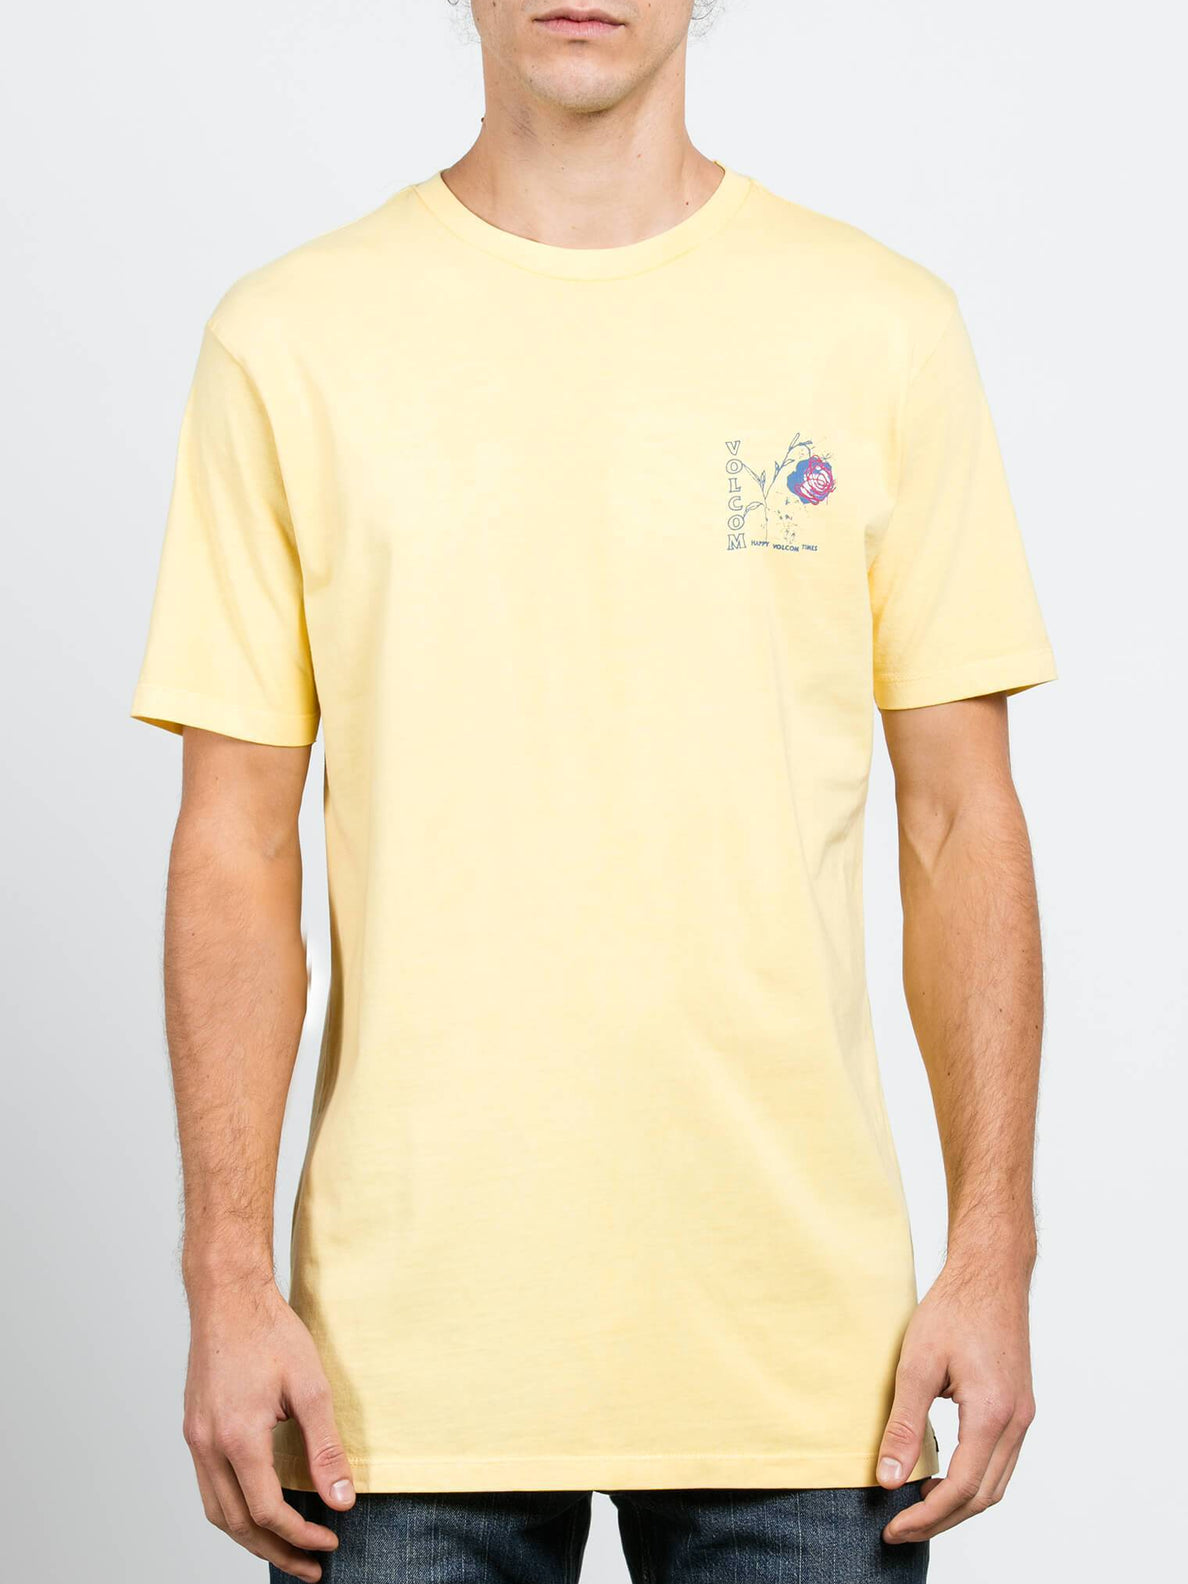 Camiseta Vco Happy Time - Light Yellow